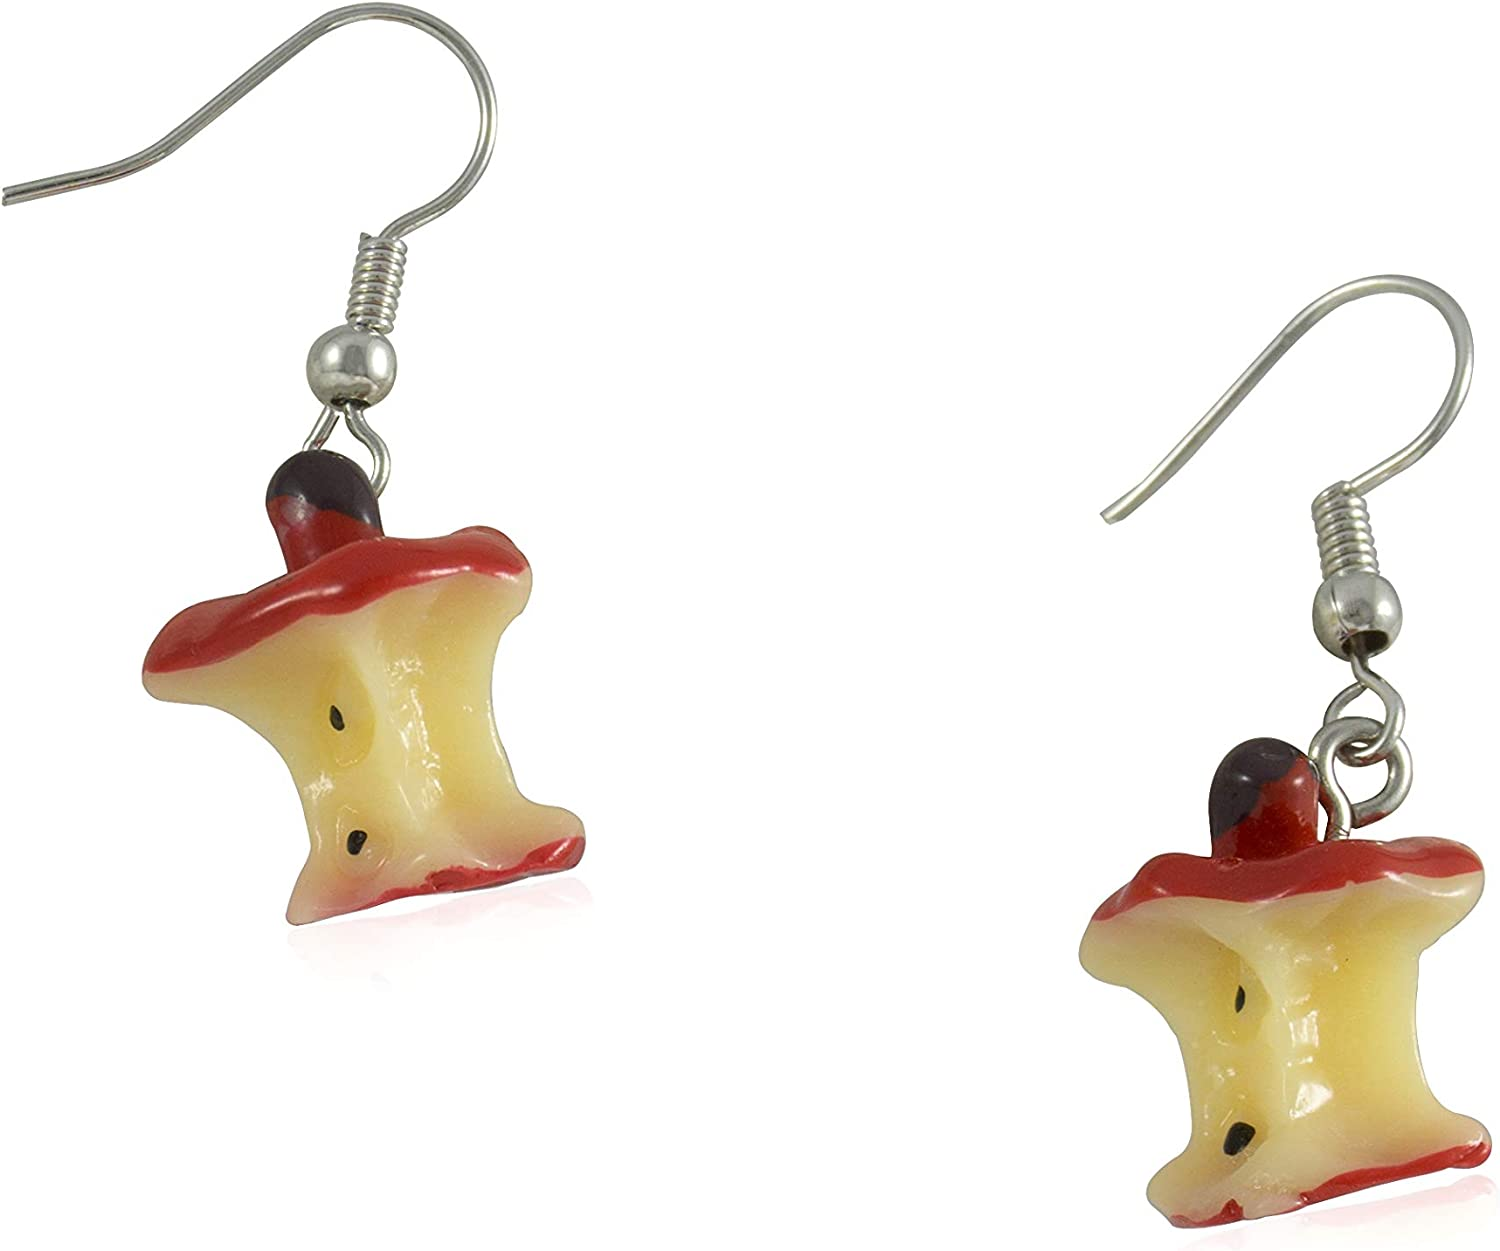 FidaShop New Red Apple Core Asymmetrical Shape Dangle Earrings, Lightweight Charms Acrylic Earrings for Women, Teens, Girls